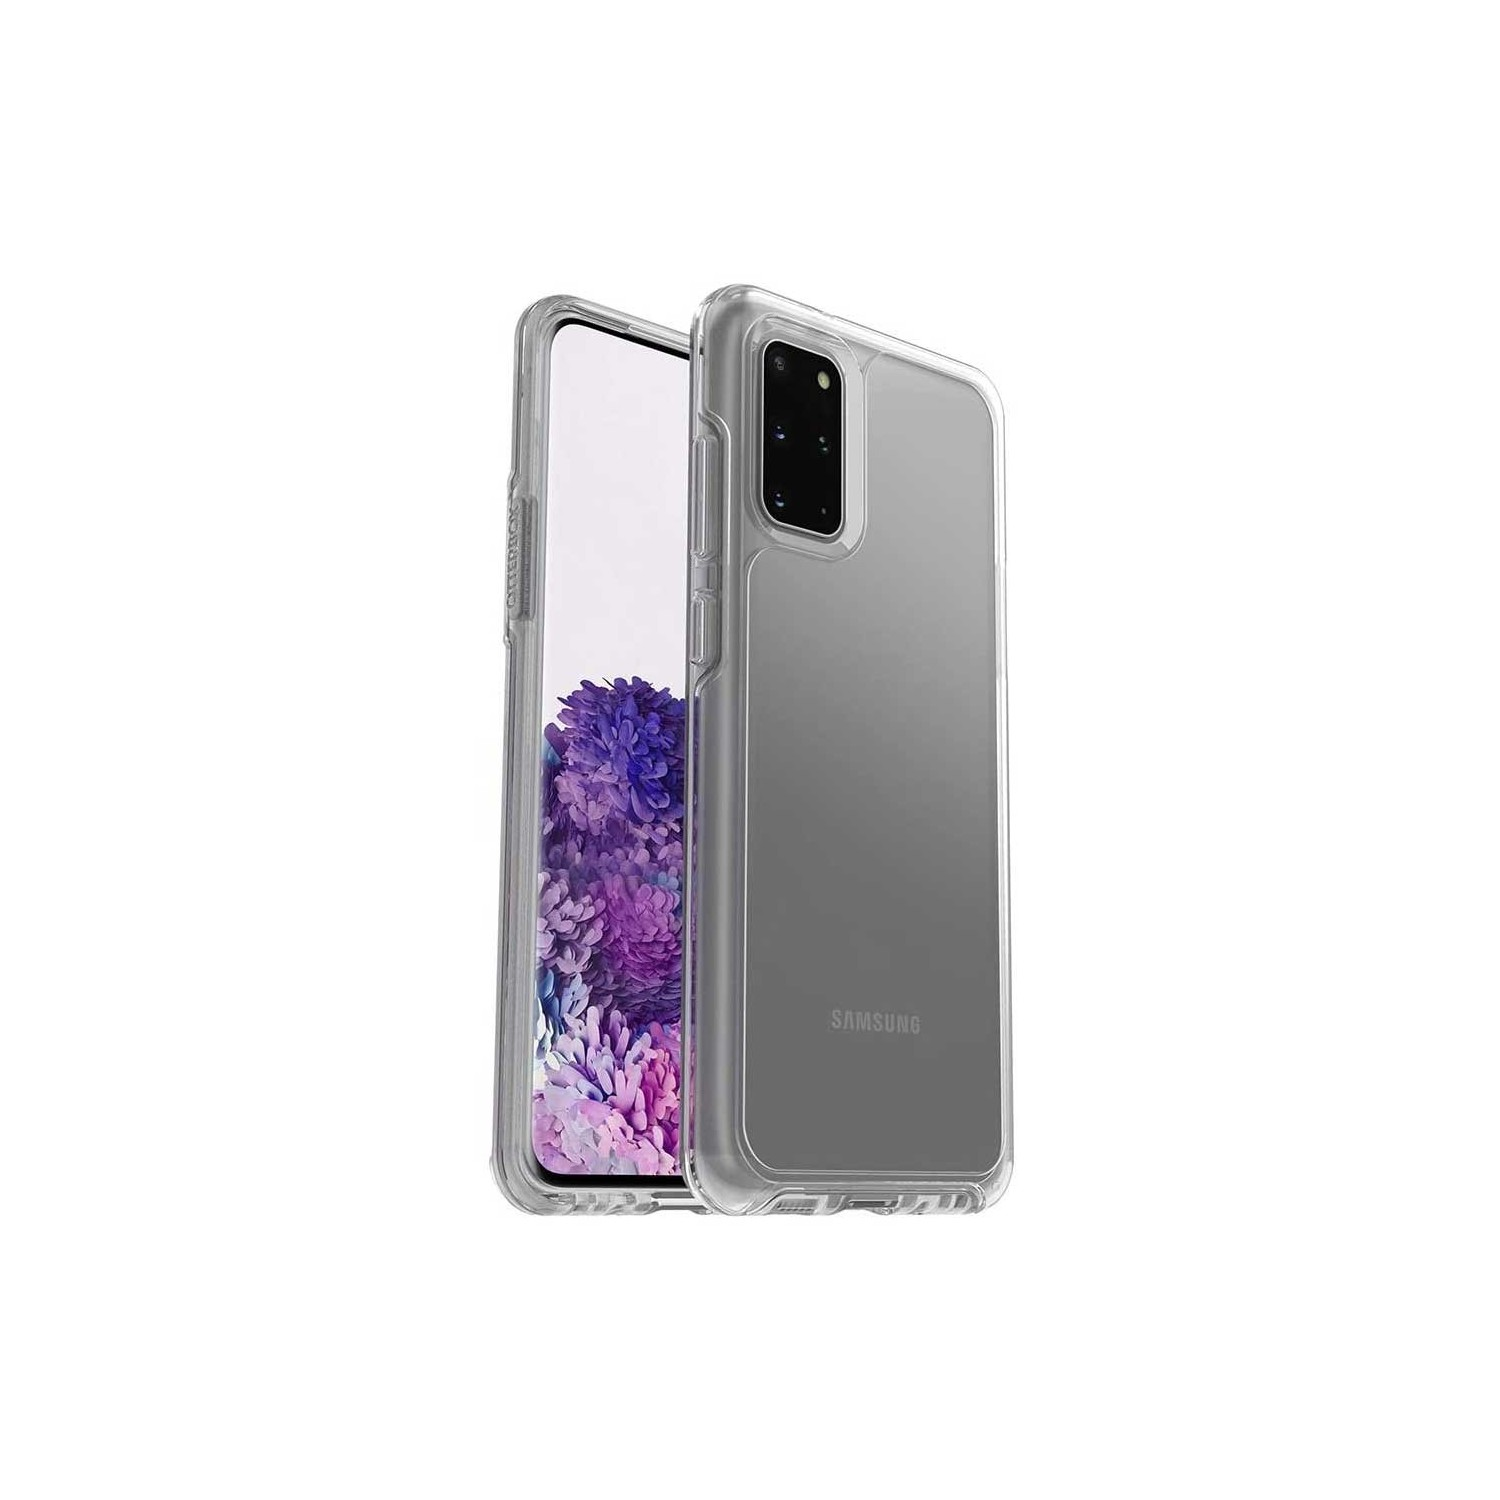 Case - OTTERBOX Symmetry for Samsung S20 PLUS - Clear